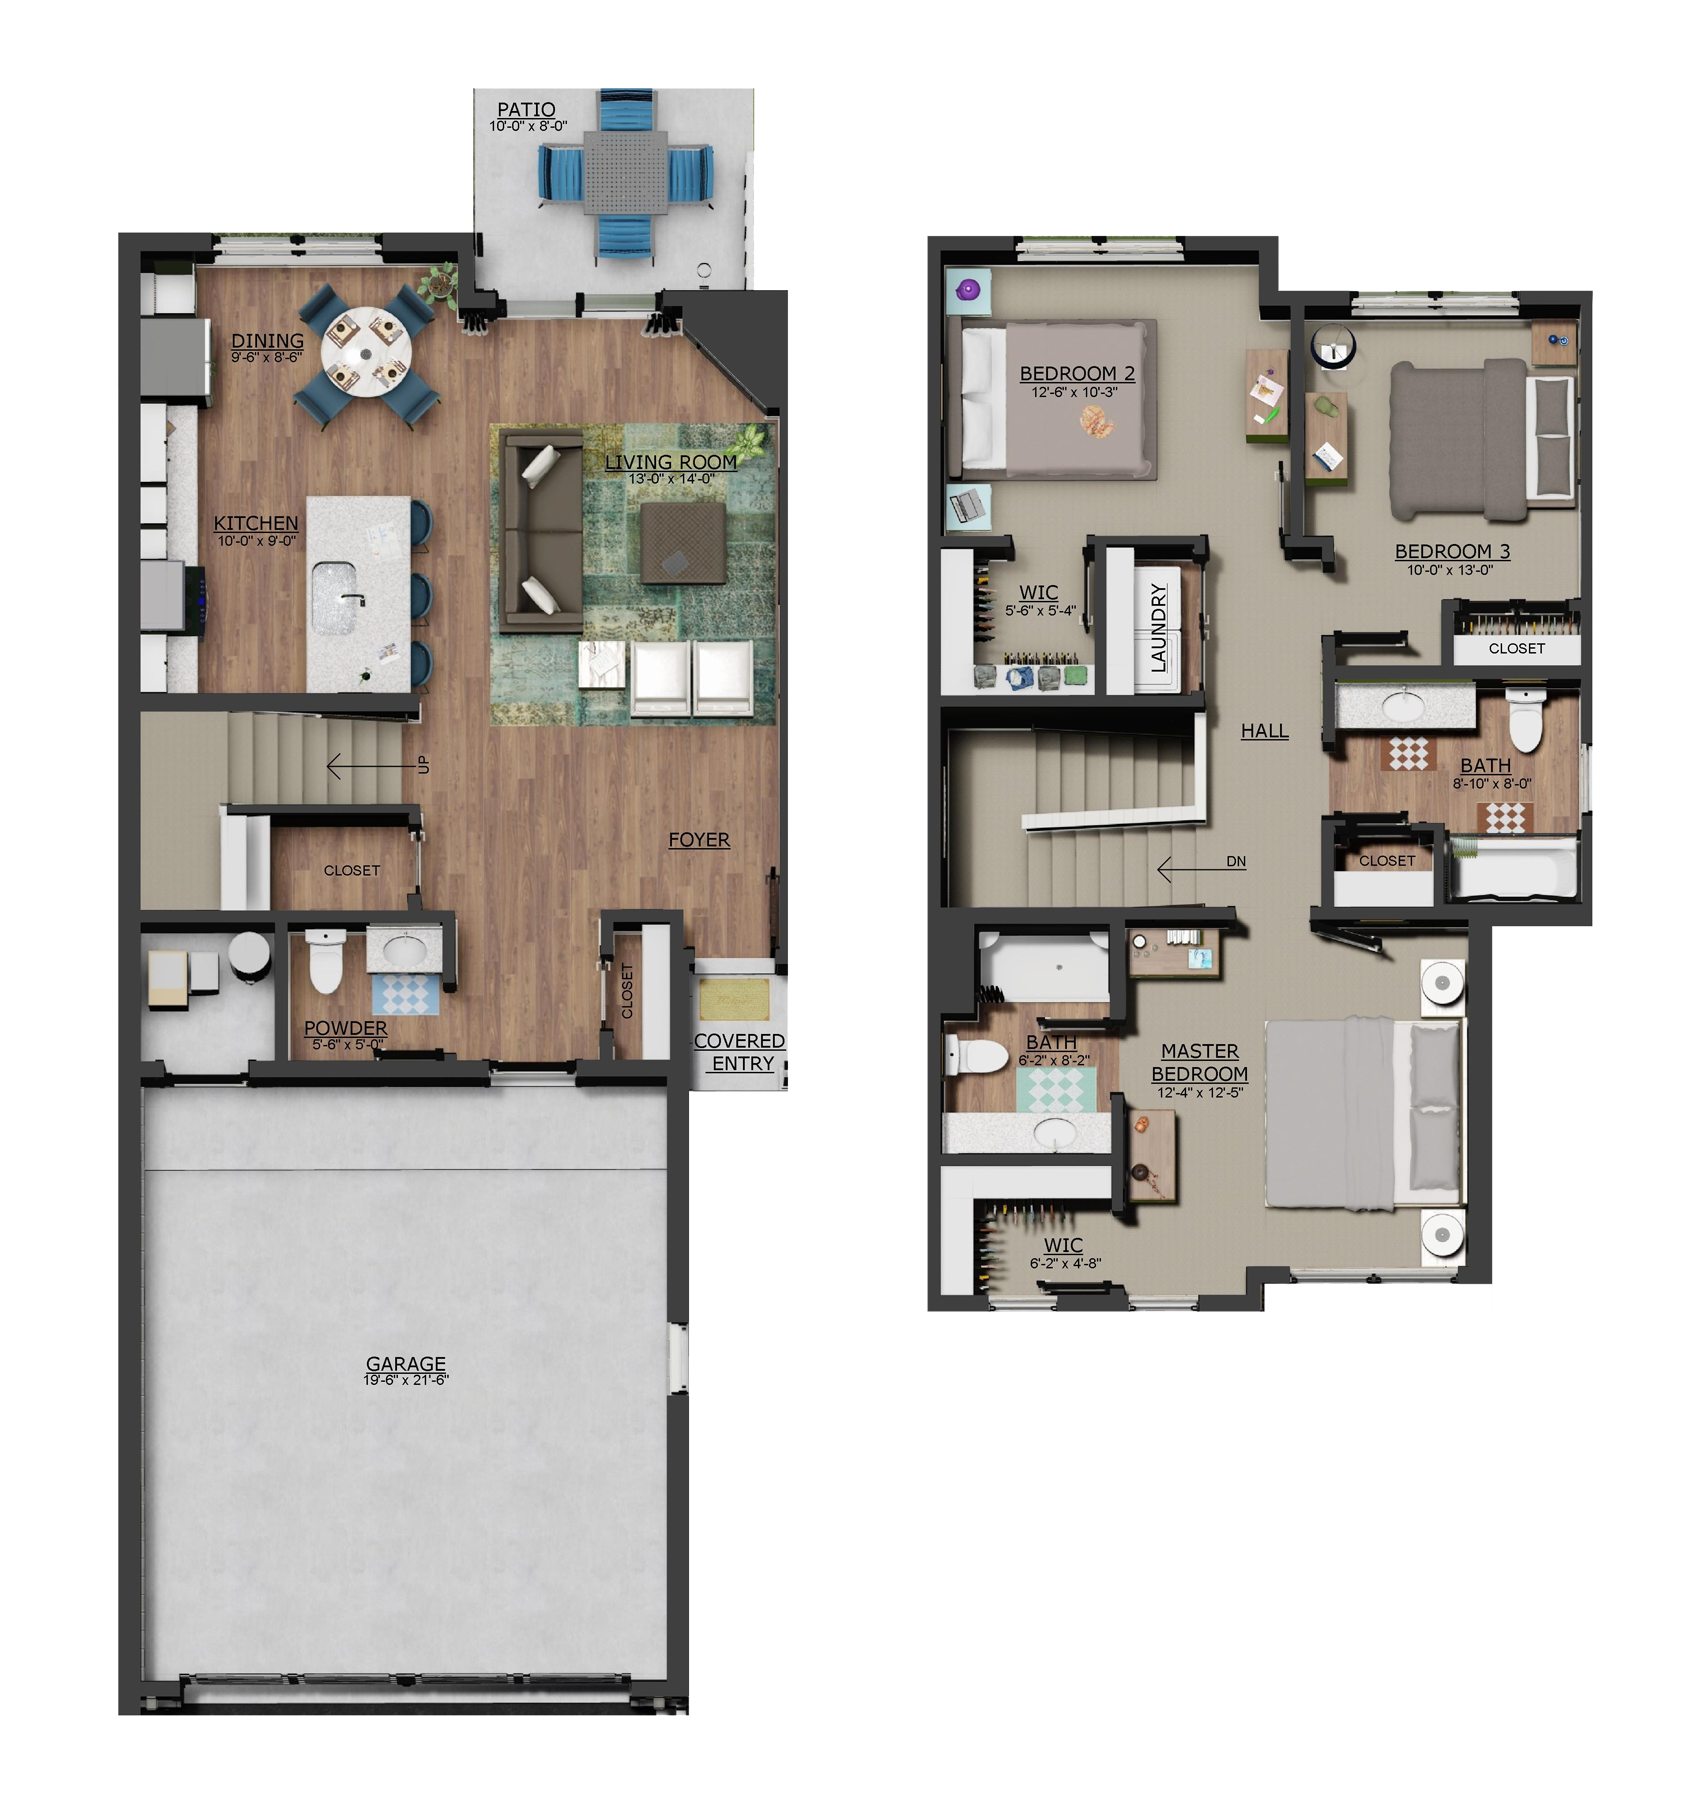 2D Floor plan of 3 Bedroom Home Preserve Townhomes of Spring Lake